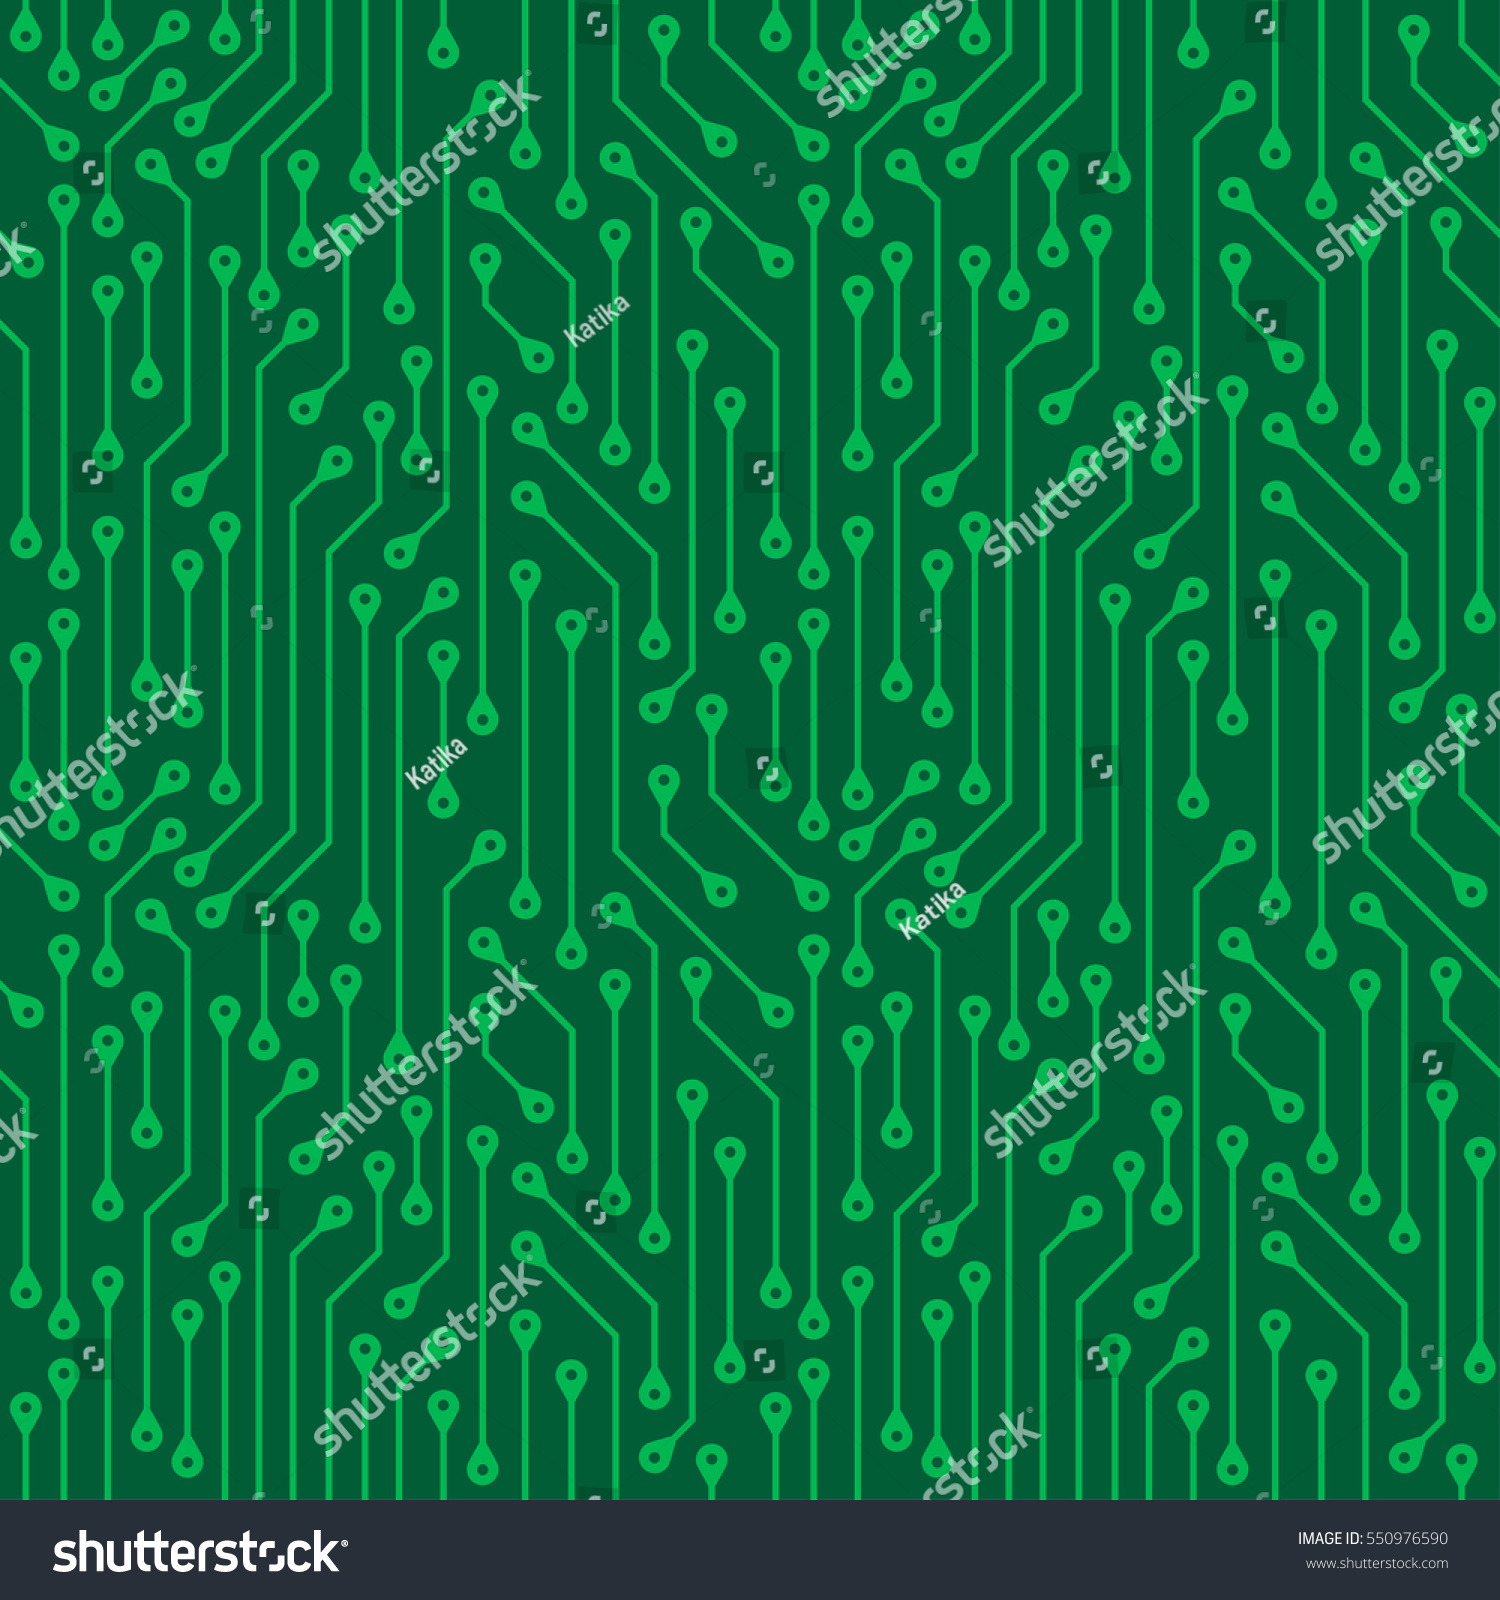 Green Seamless Pattern Electronic Boards Abstract Stock Vector Components Wallpaper Of Background Digital